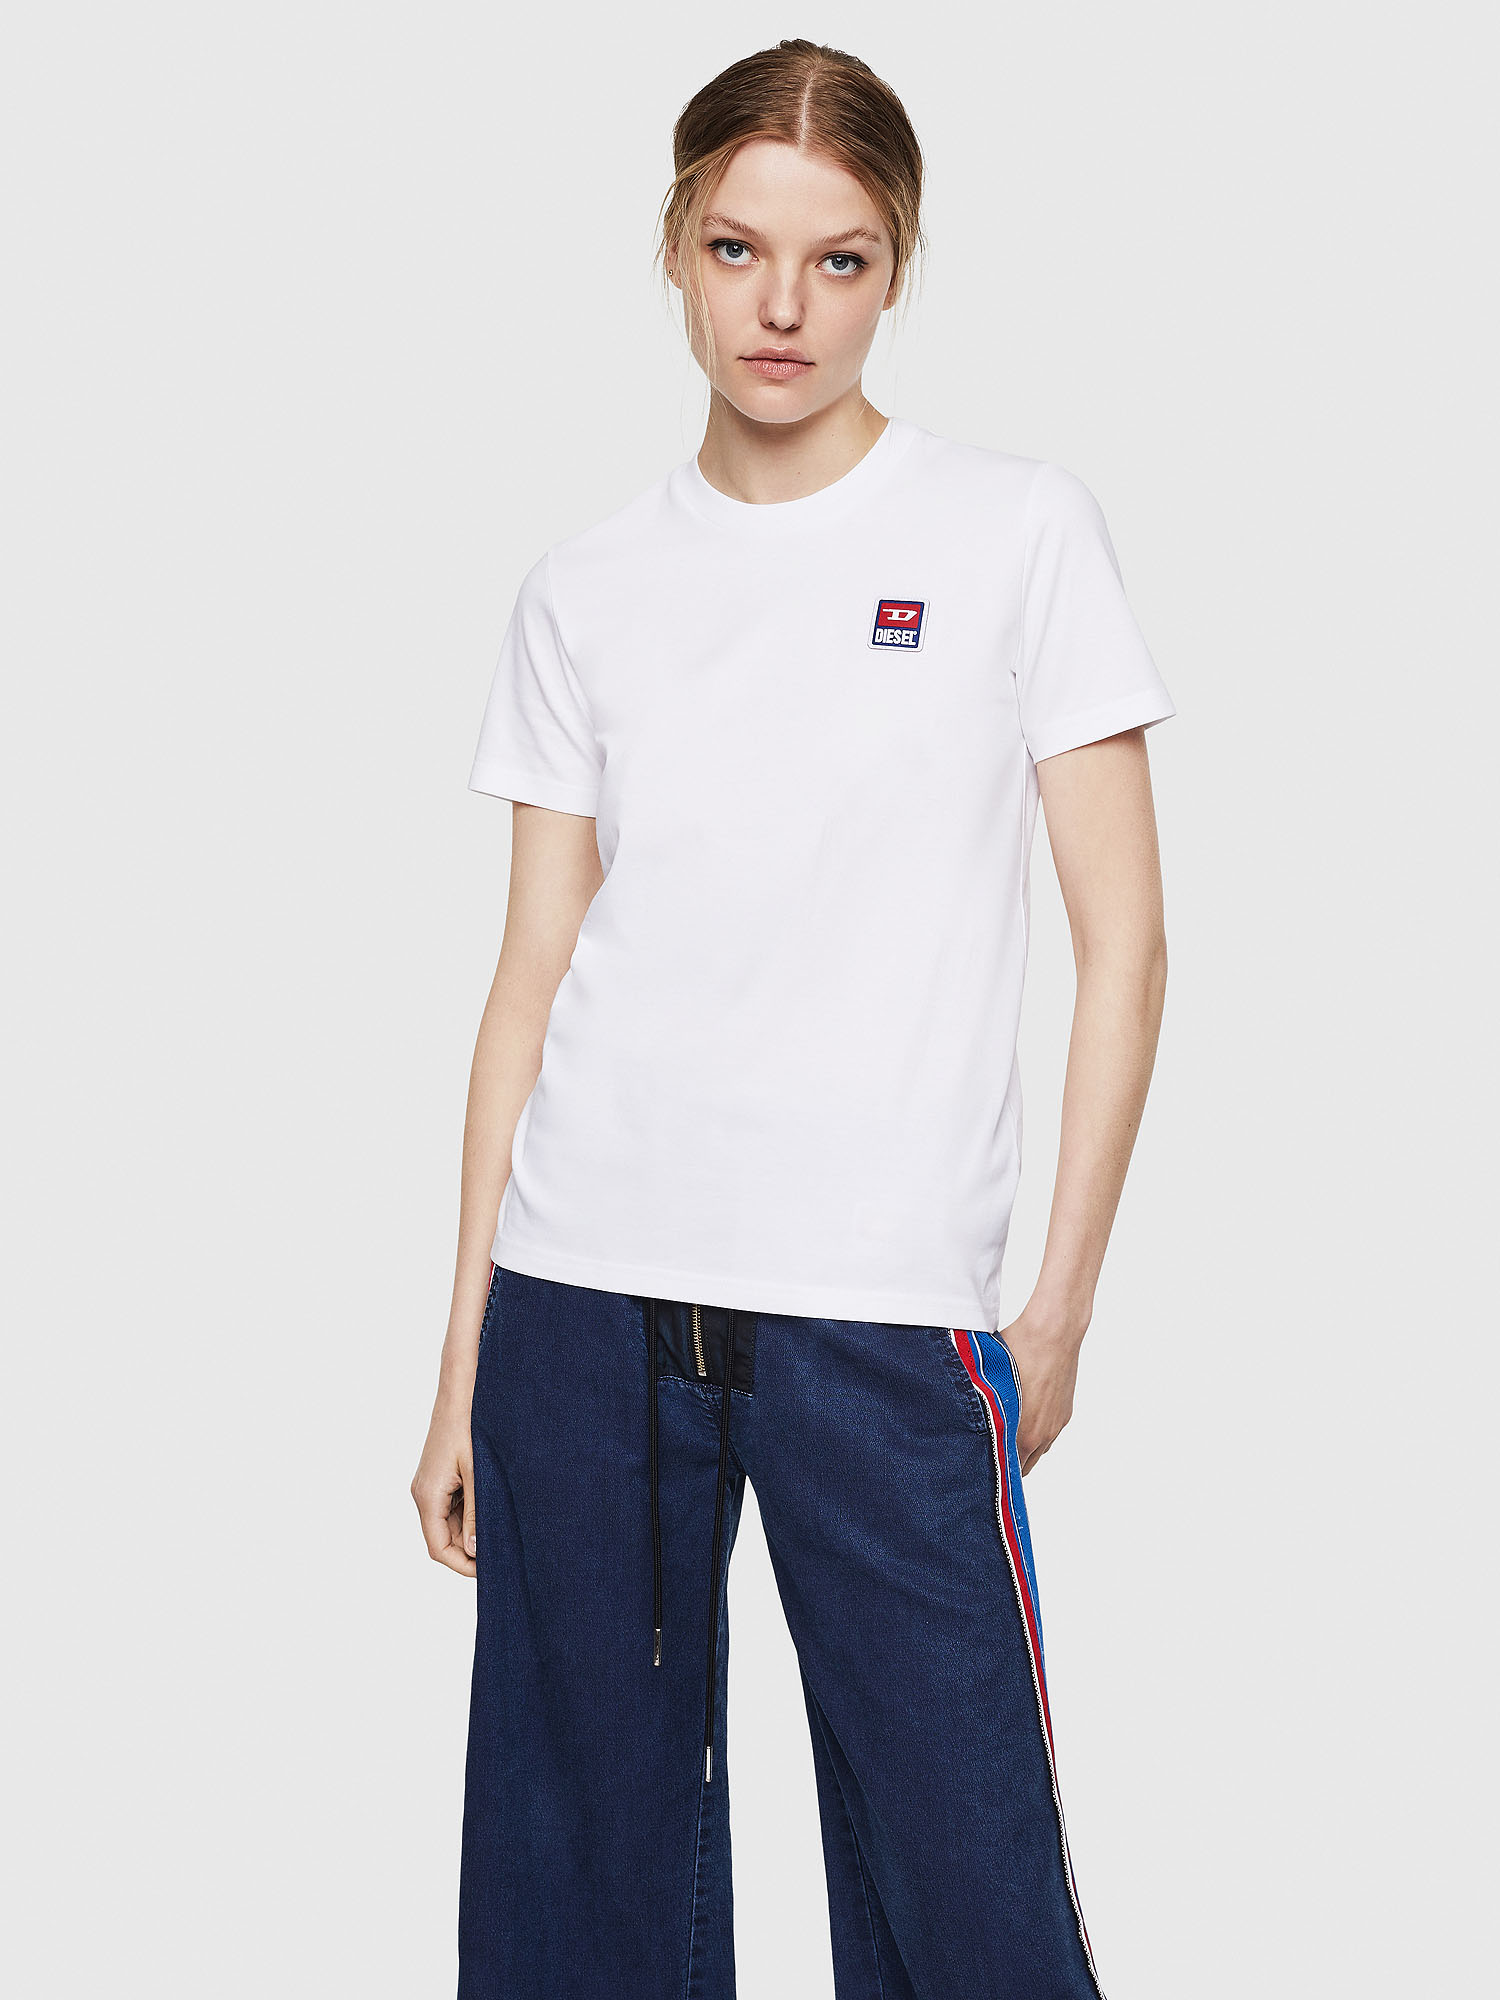 Diesel - T-SILY-ZE,  - T-Shirts - Image 1